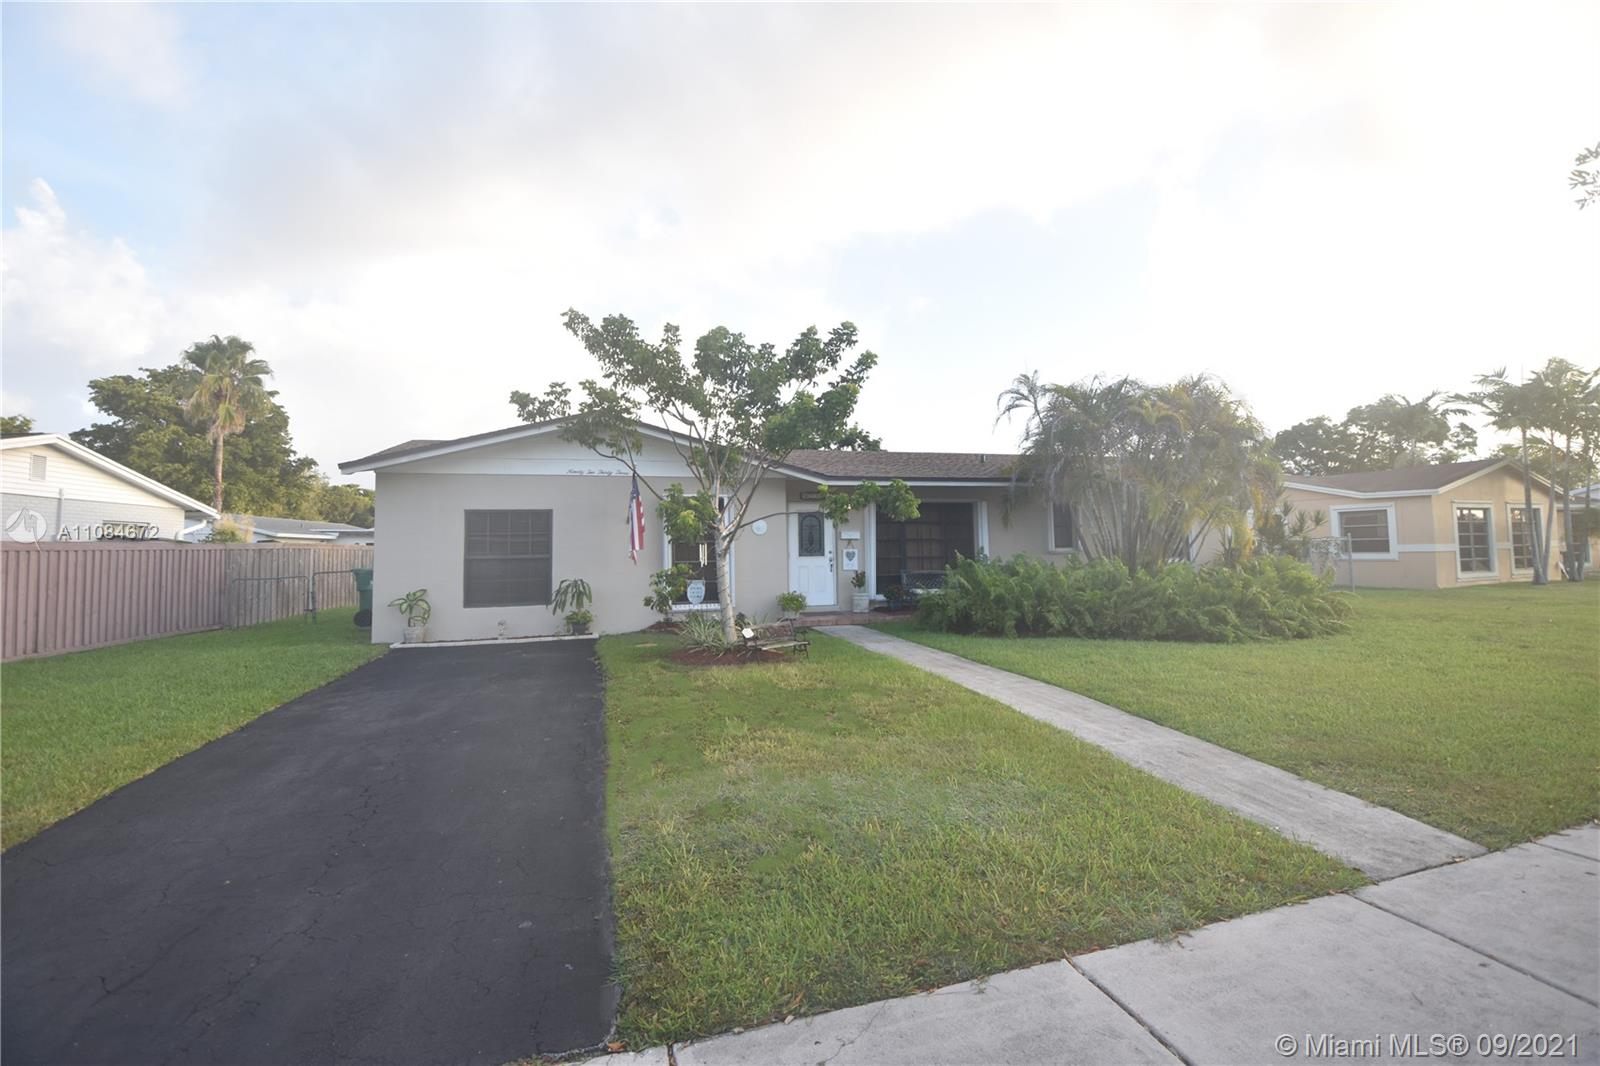 Open Saturday 9-18 - 1-3 pm.!  Palmetto Bay Beauty on sidewalk lined street.  All remodeling is fully permitted!  Excellent Location!  New Roof in 2019. Four Bedroom Split Plan on interior street with LOW Traffic.  Hurricane Accordion Shutters, Custom Pergola, Custom Central Air Conditioner. Full Appliances, Updated Baths, Open Kitchen with Dining room combination and Laminate and Wood Cabinets. Tile Floors, Walk-in closet, Split Floor Plan.  Larger, unique shaped Lot, Excellent access for Boat and RV storage. Schools are Miami Palmetto, Palmer Trinity, Cutler Bay Coast, Mater, Southwood.  Village of Palmetto Bay location, Brand-new Publix! Beautiful!